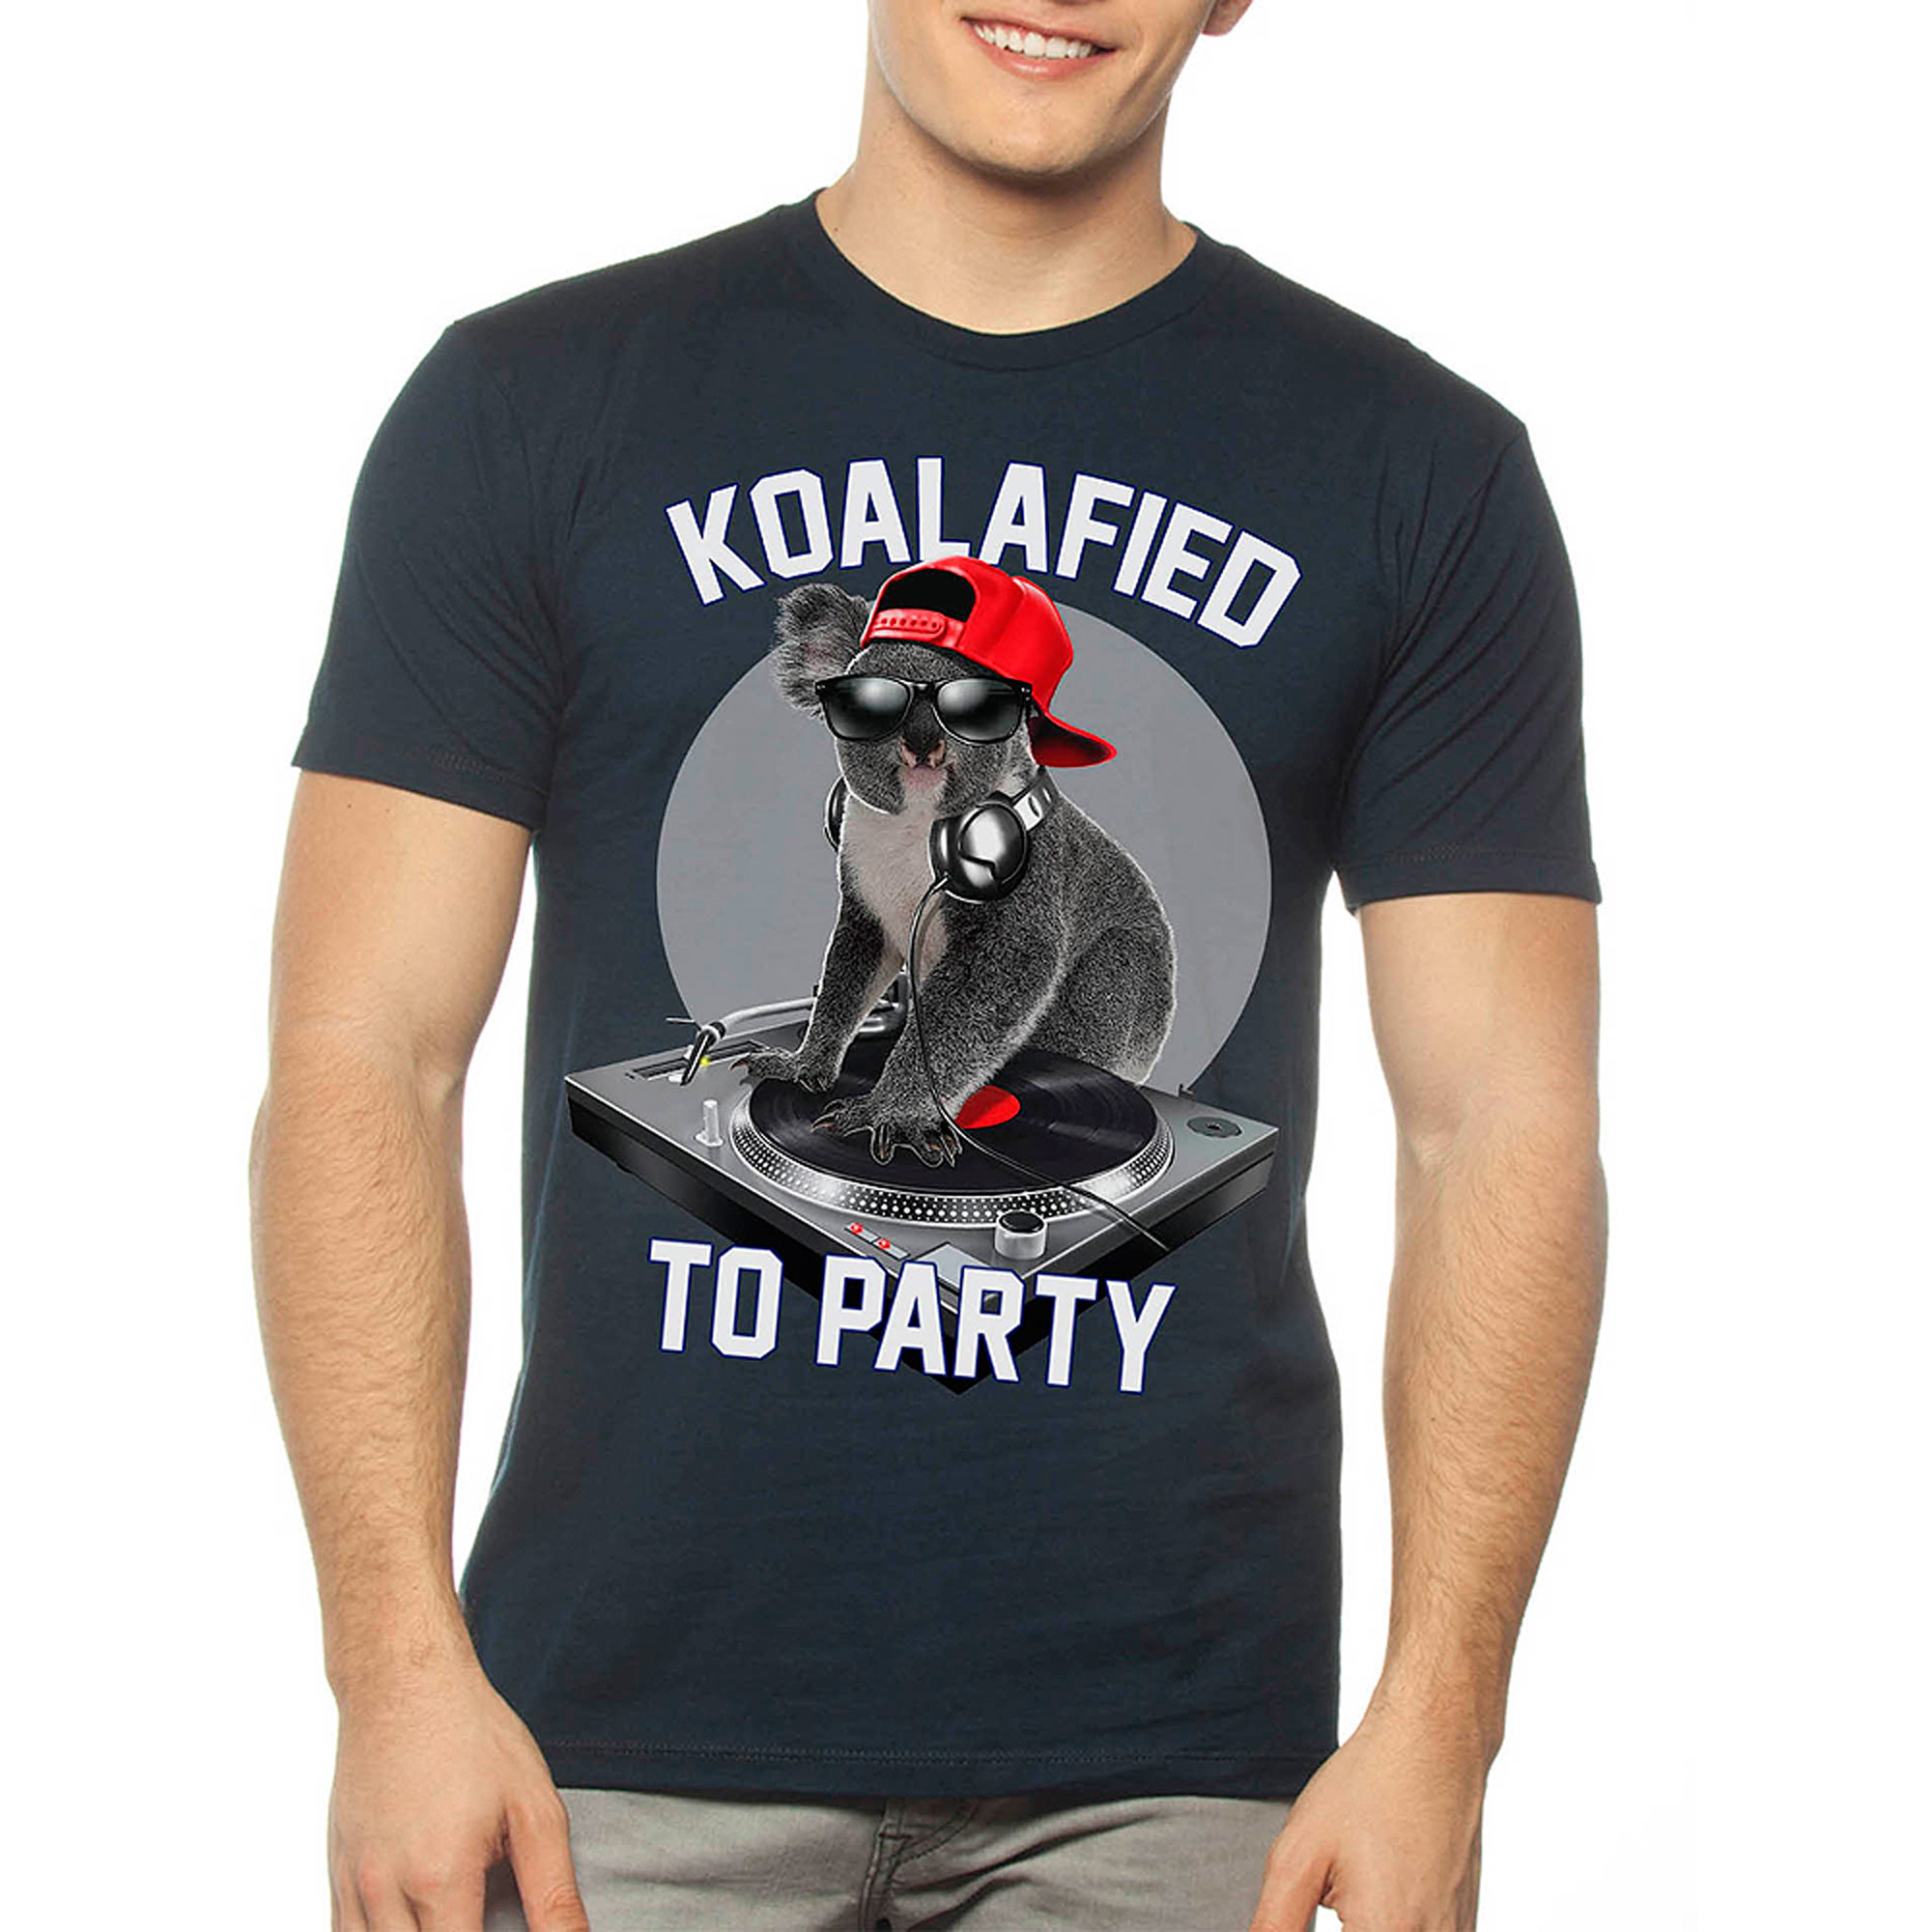 Koalified To Party Men's Graphic Tee